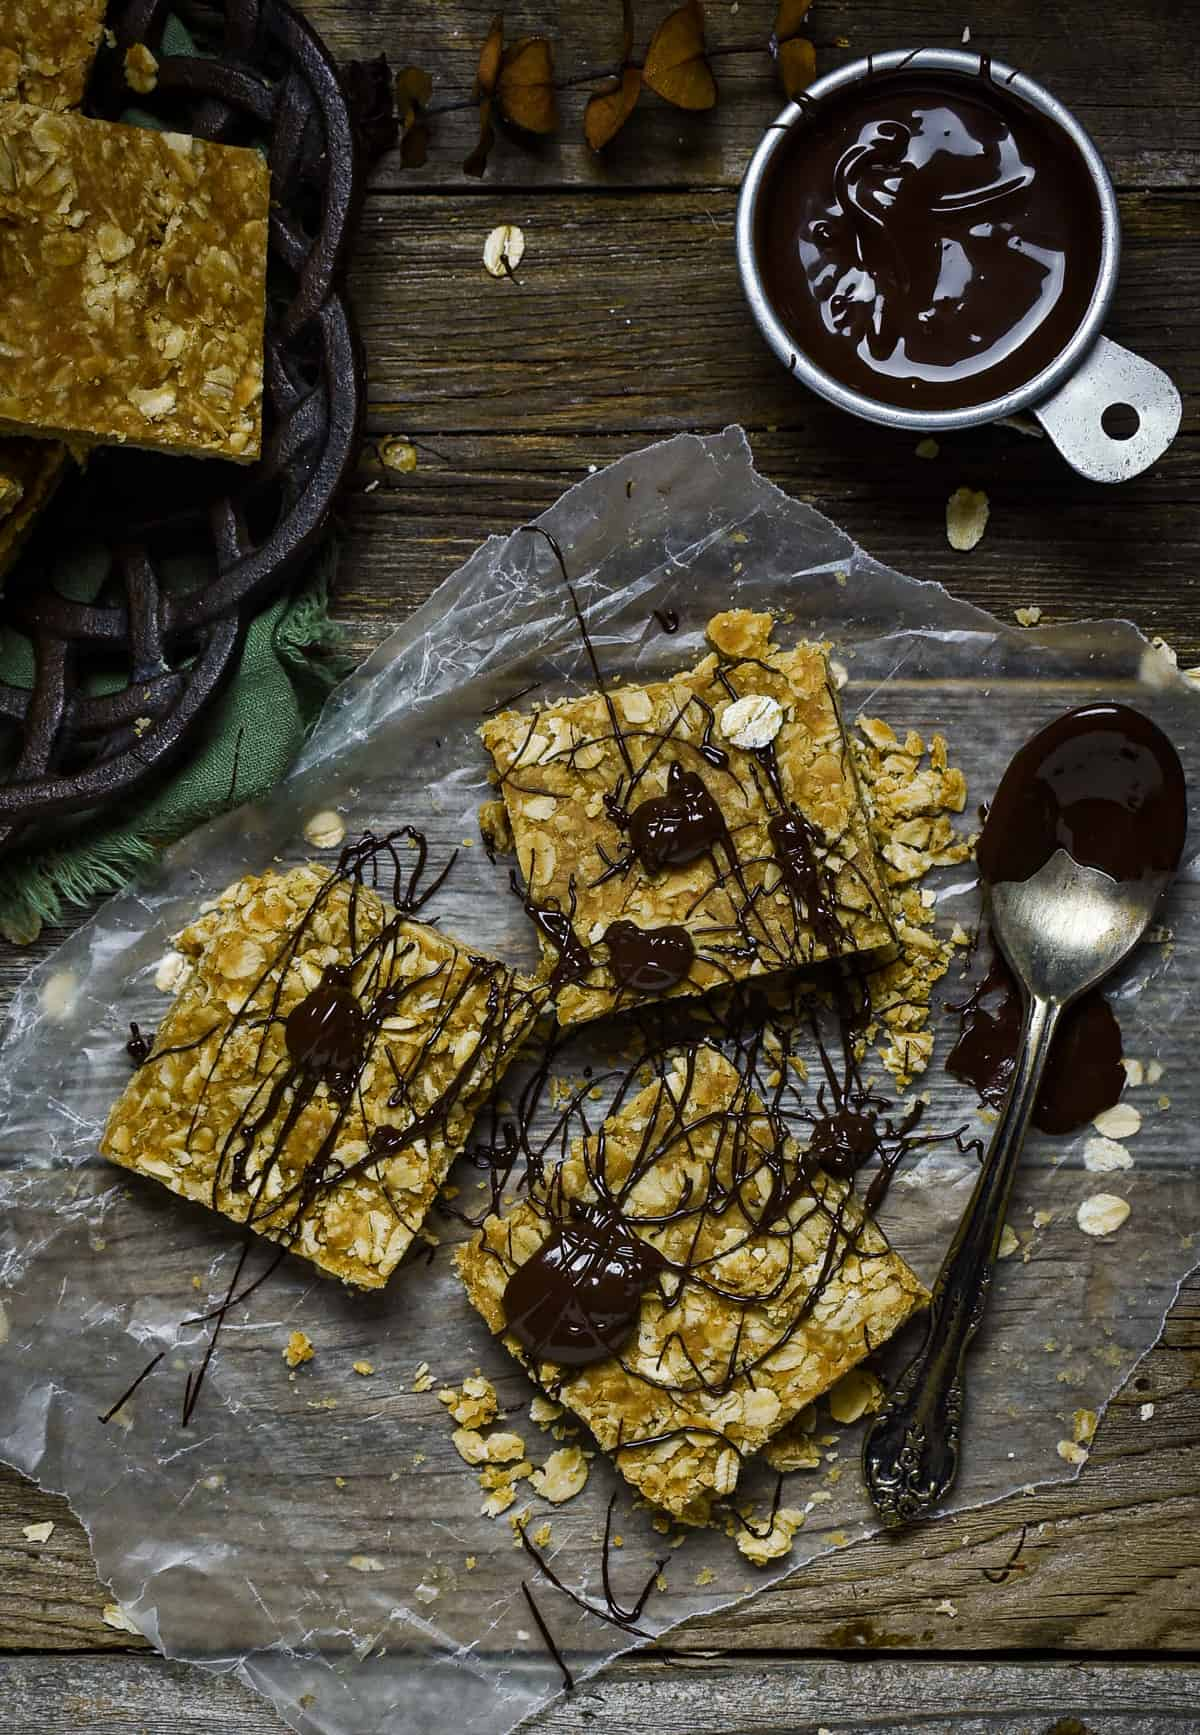 Peanut butter oatmeal bars drizzled with chocolate.